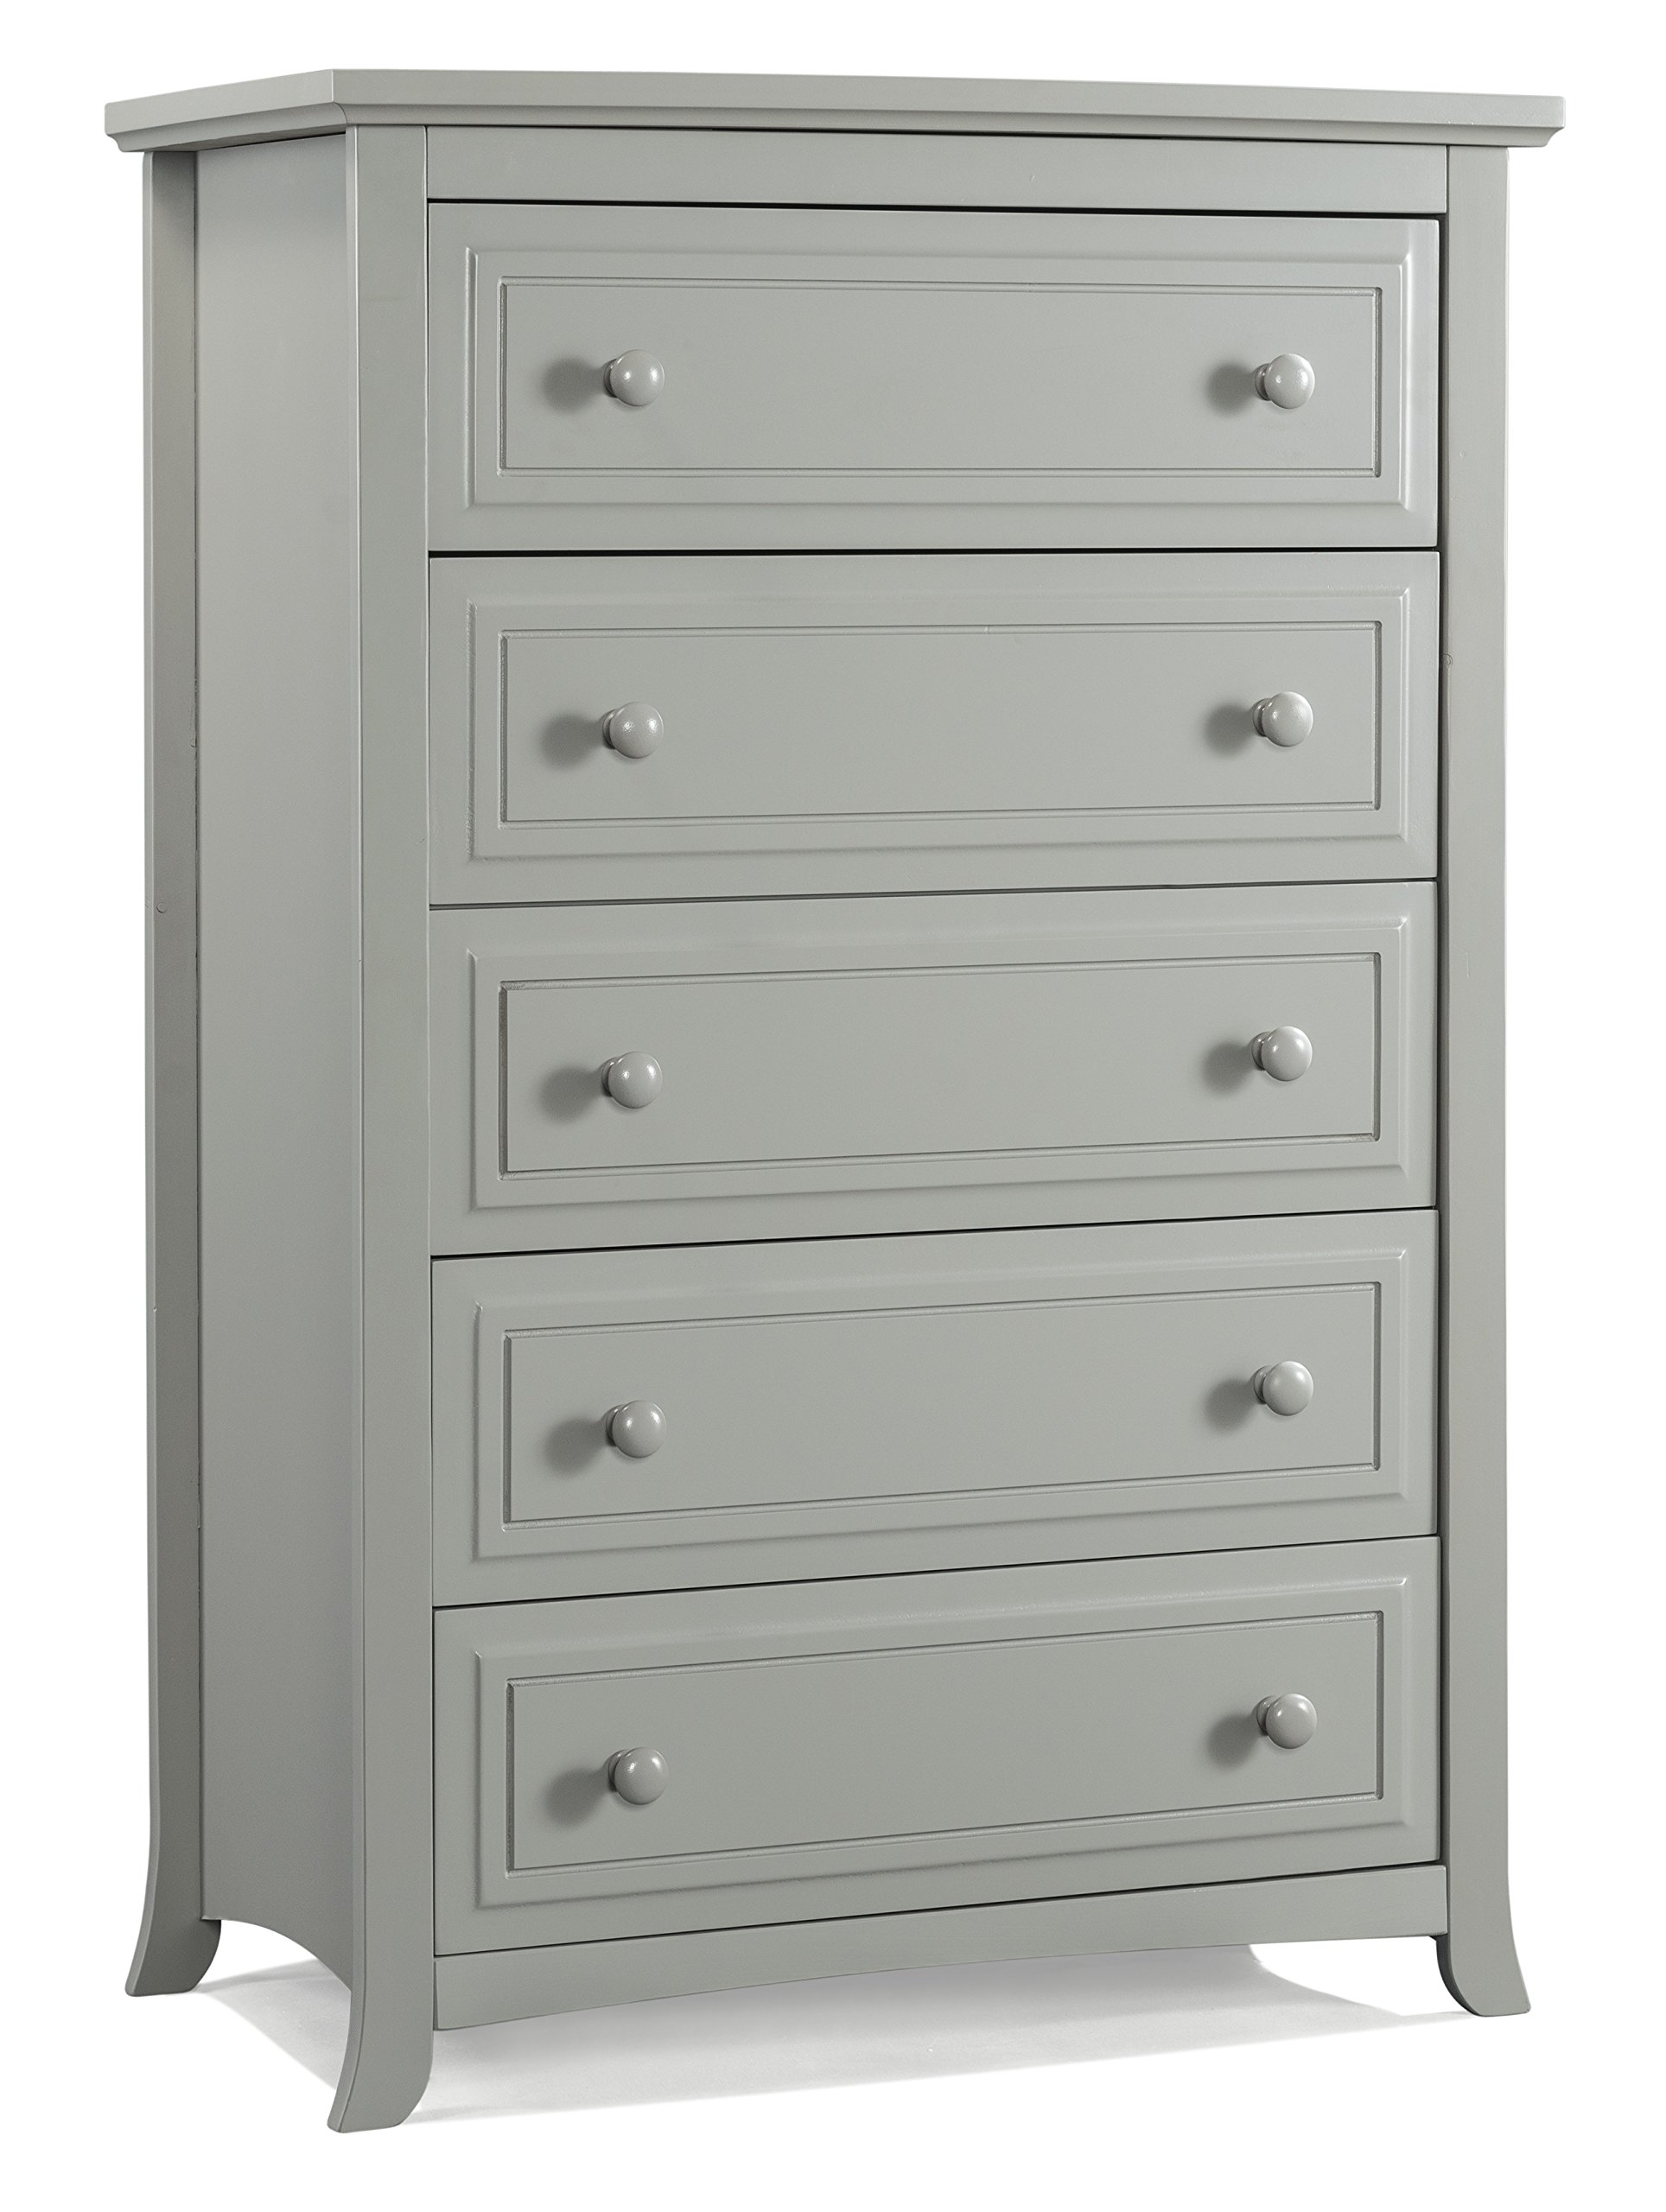 Graco Kendall 5 Drawer Chest, Pebble Gray